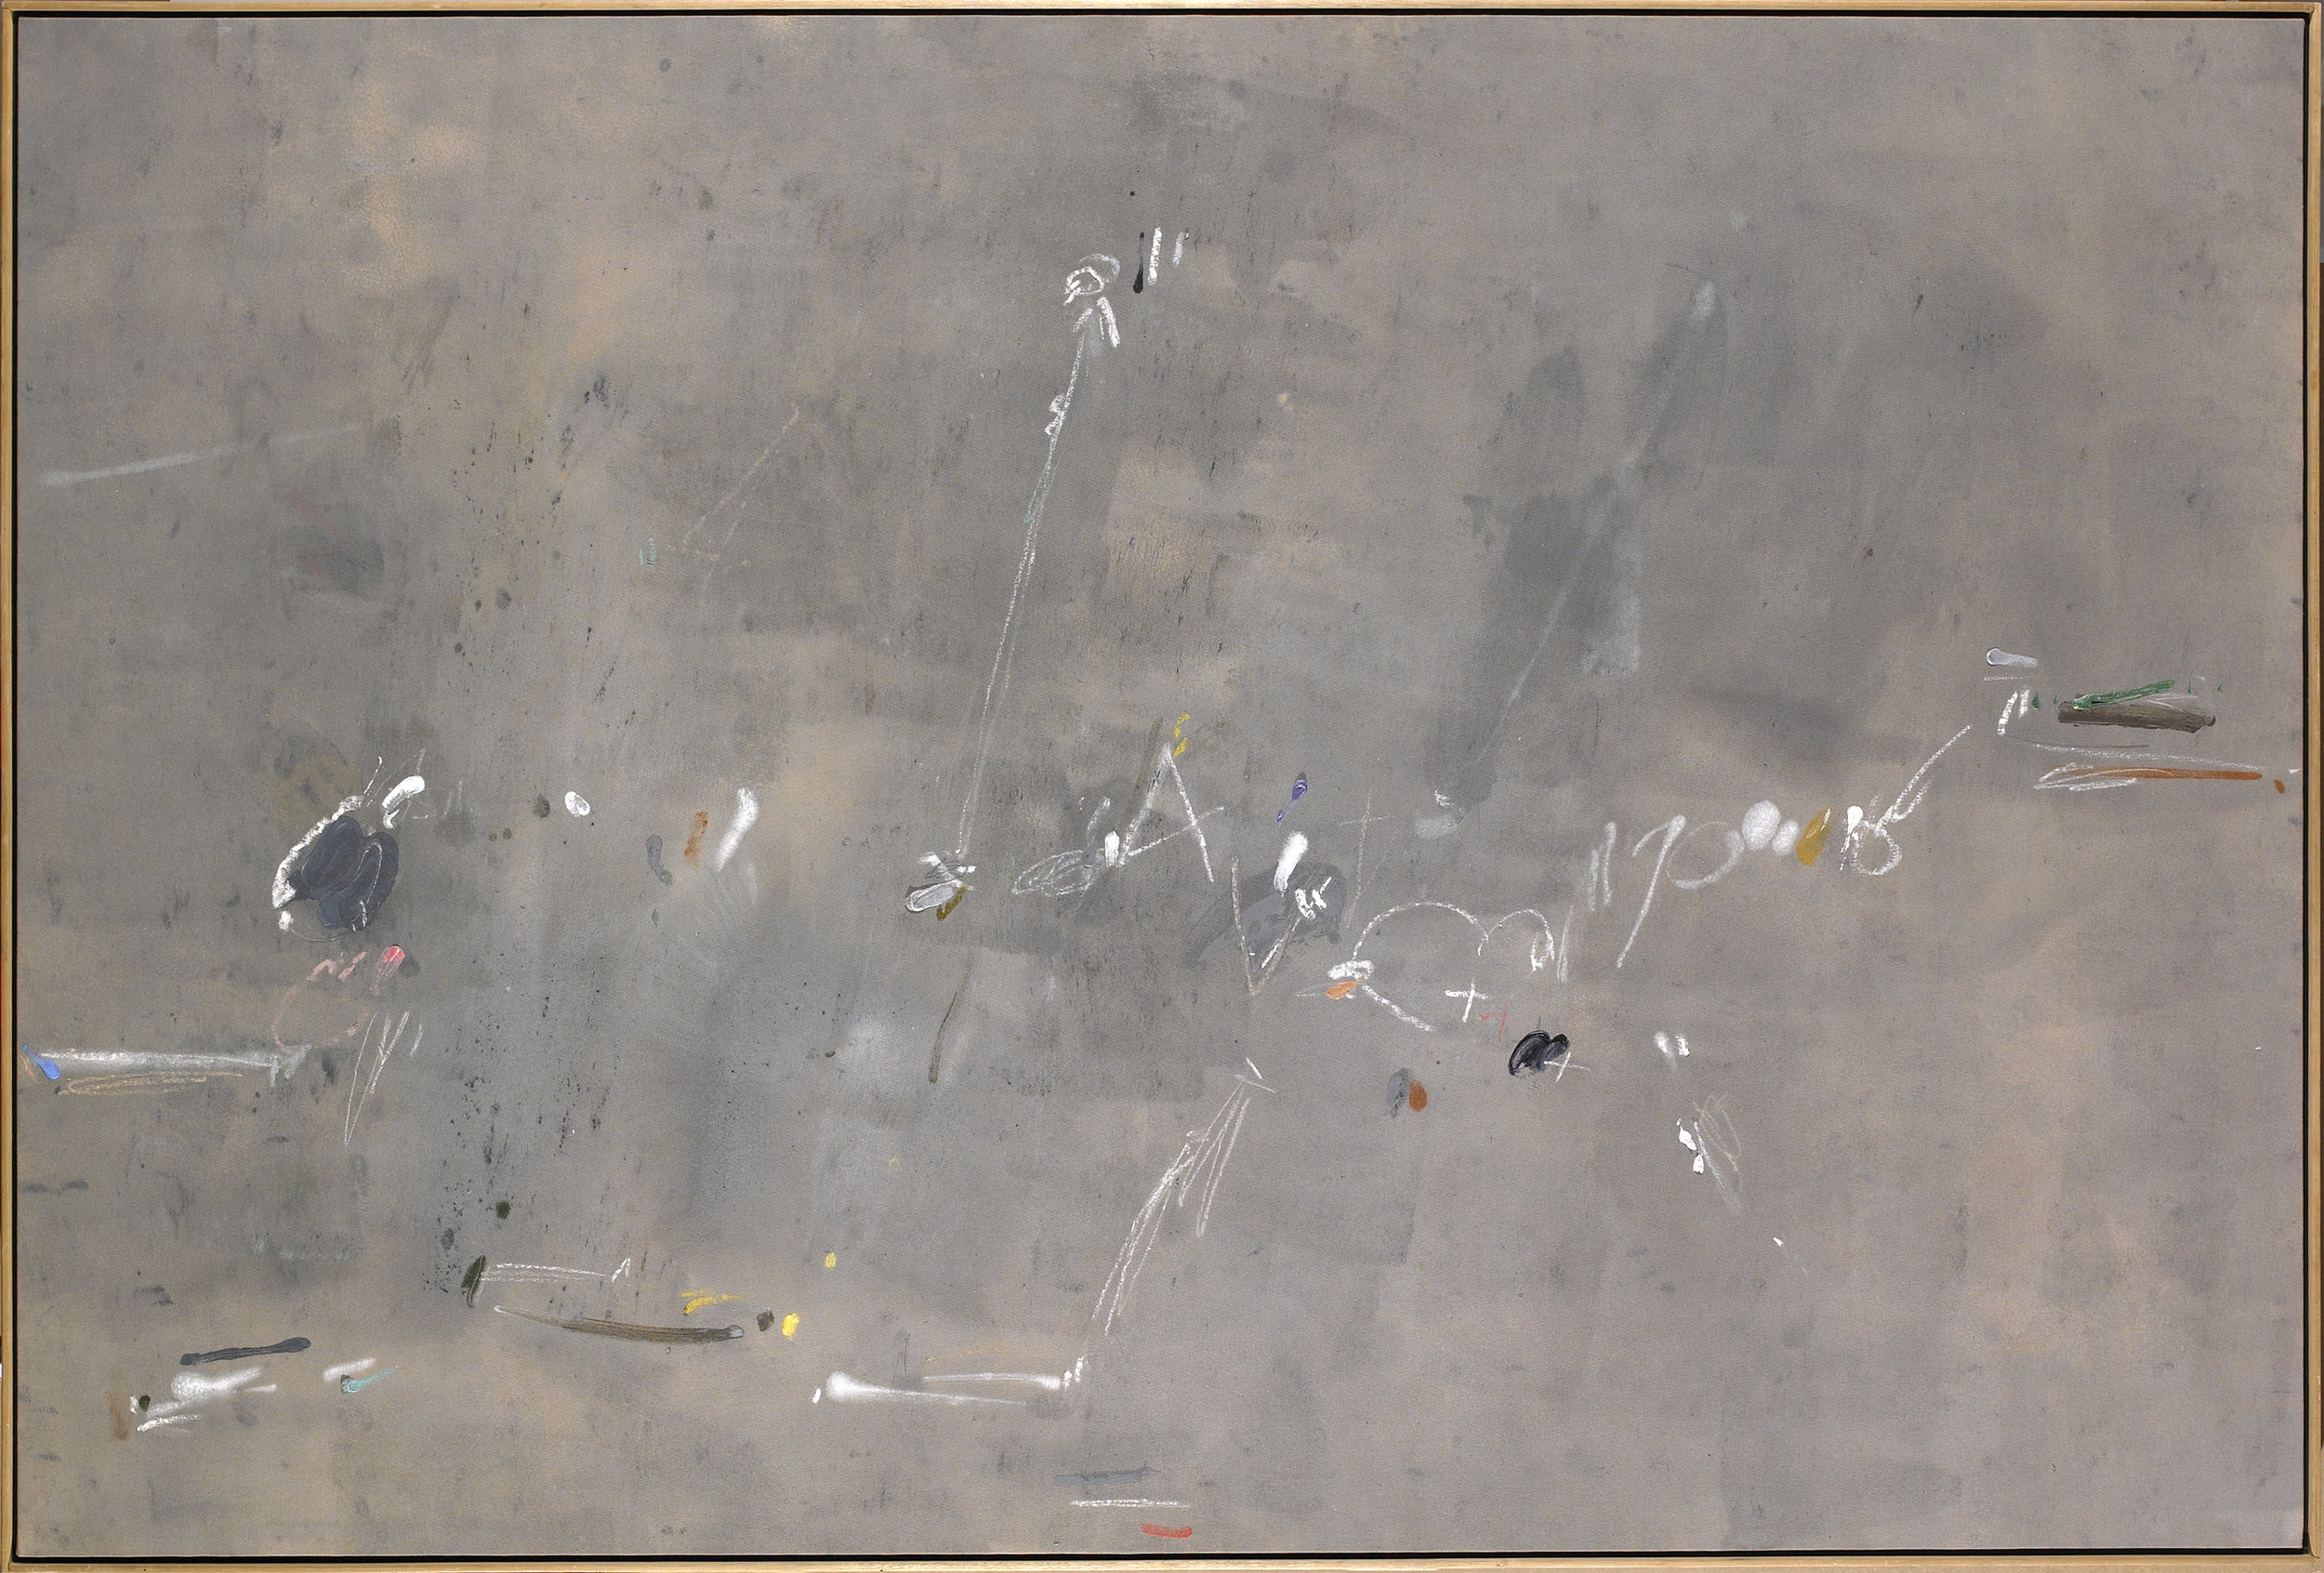 Turkish Twigs , Oil on canvas, 1986, 55 1/2 x 85 1/2 inches